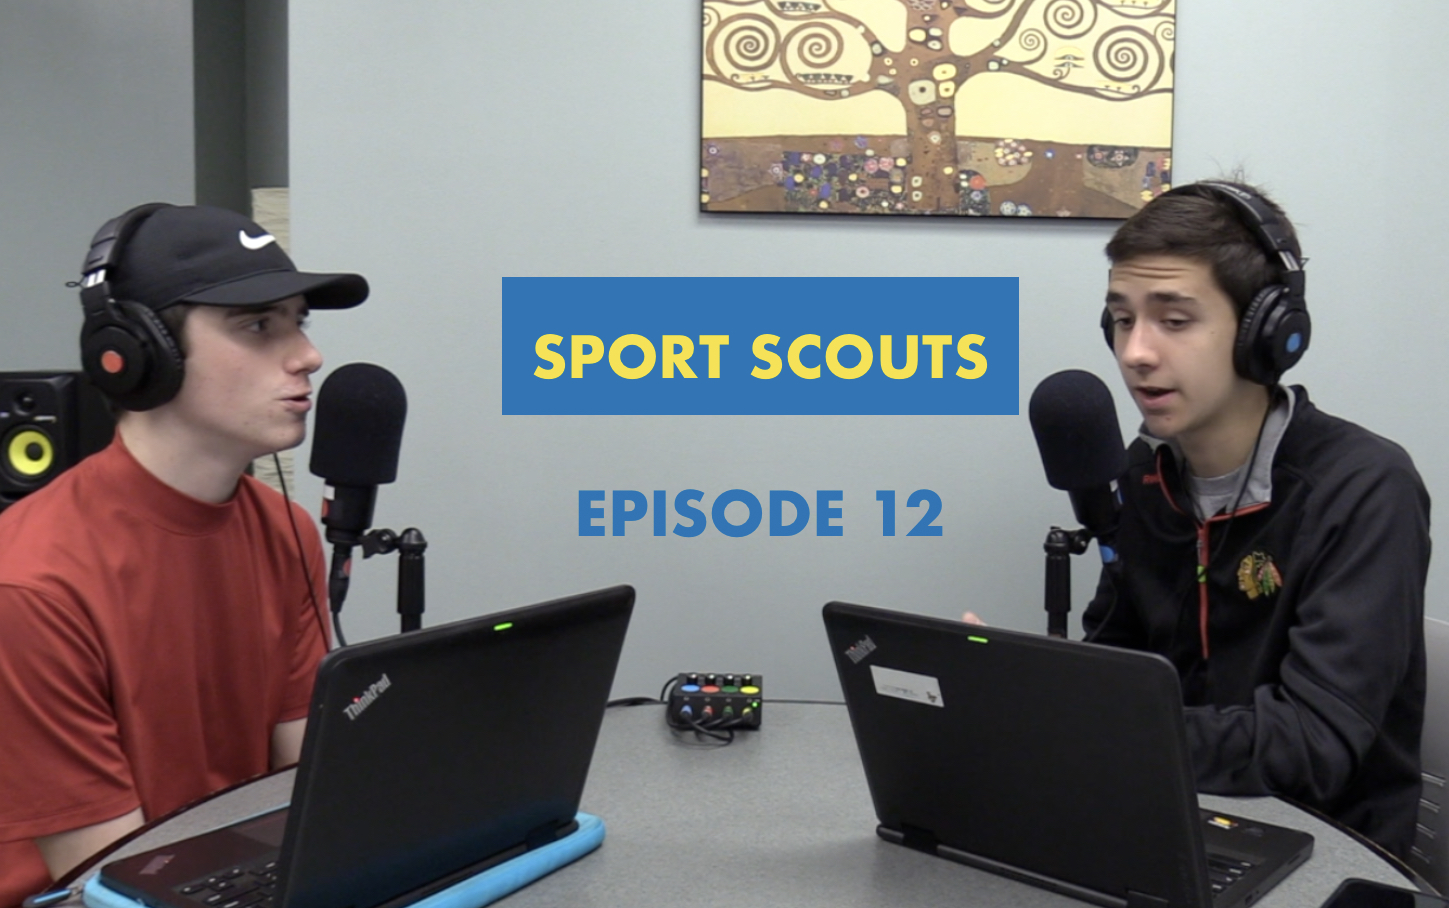 Goodsir and Raupp are back in the studio for a big sports week. Goodsir dons a familiar look to cheer on his favorite golfer on PGA Championship Thursday.